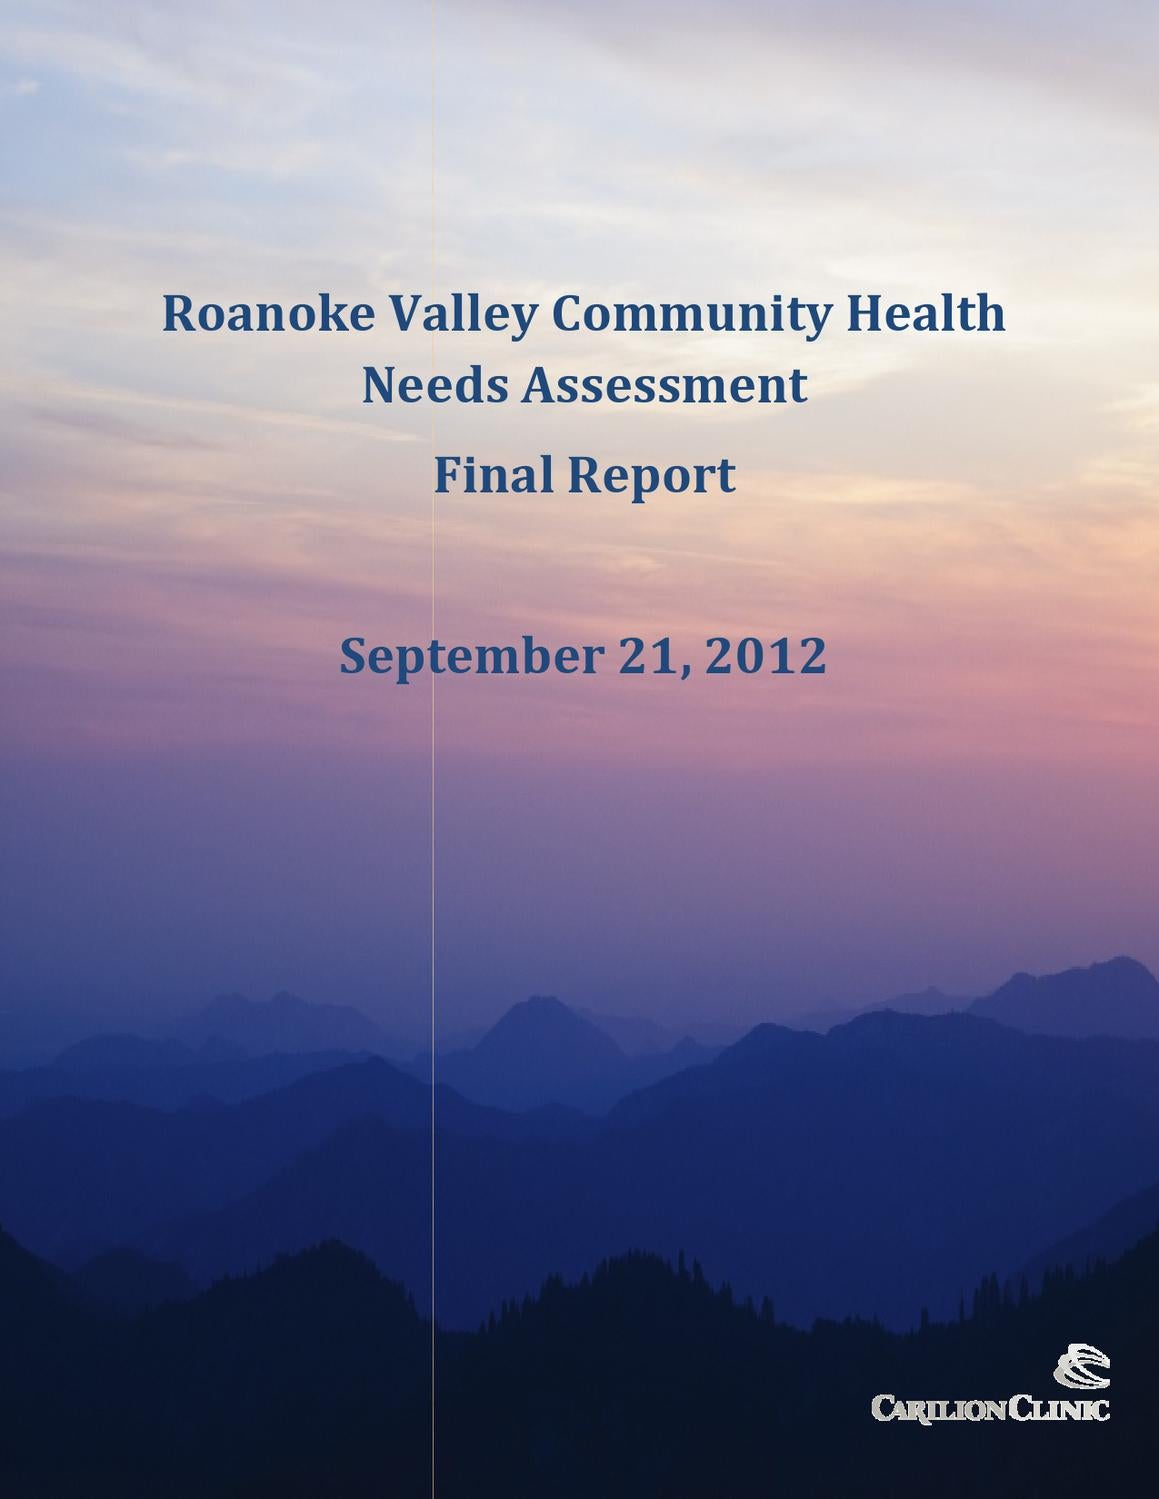 roanoke valley community health needs assessment final report by